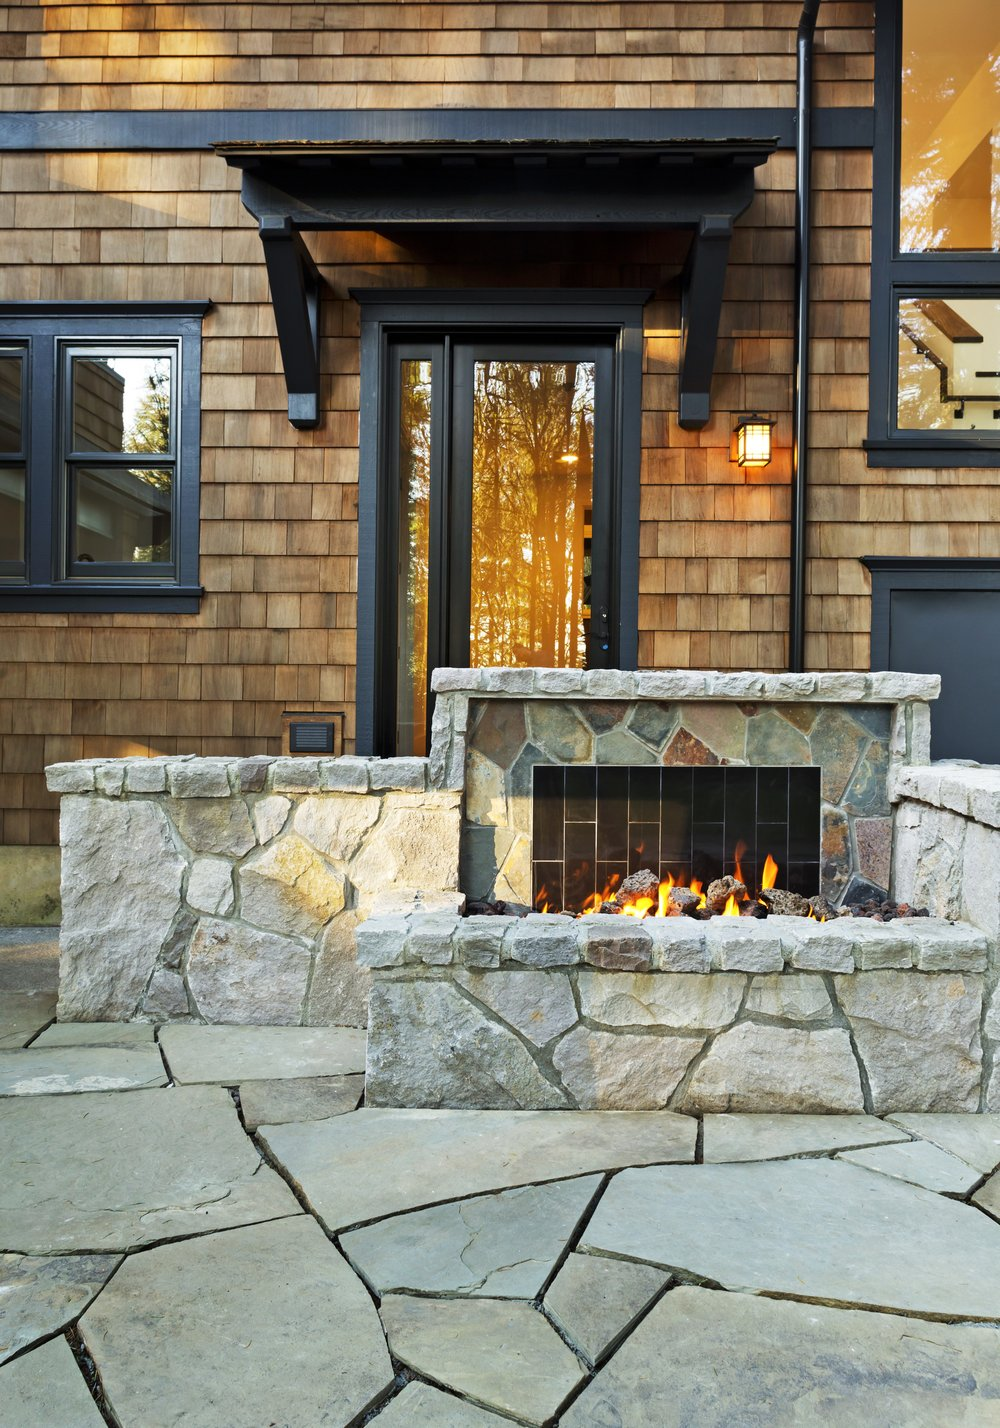 Top stone landscape supply company in Bergen County, NJ